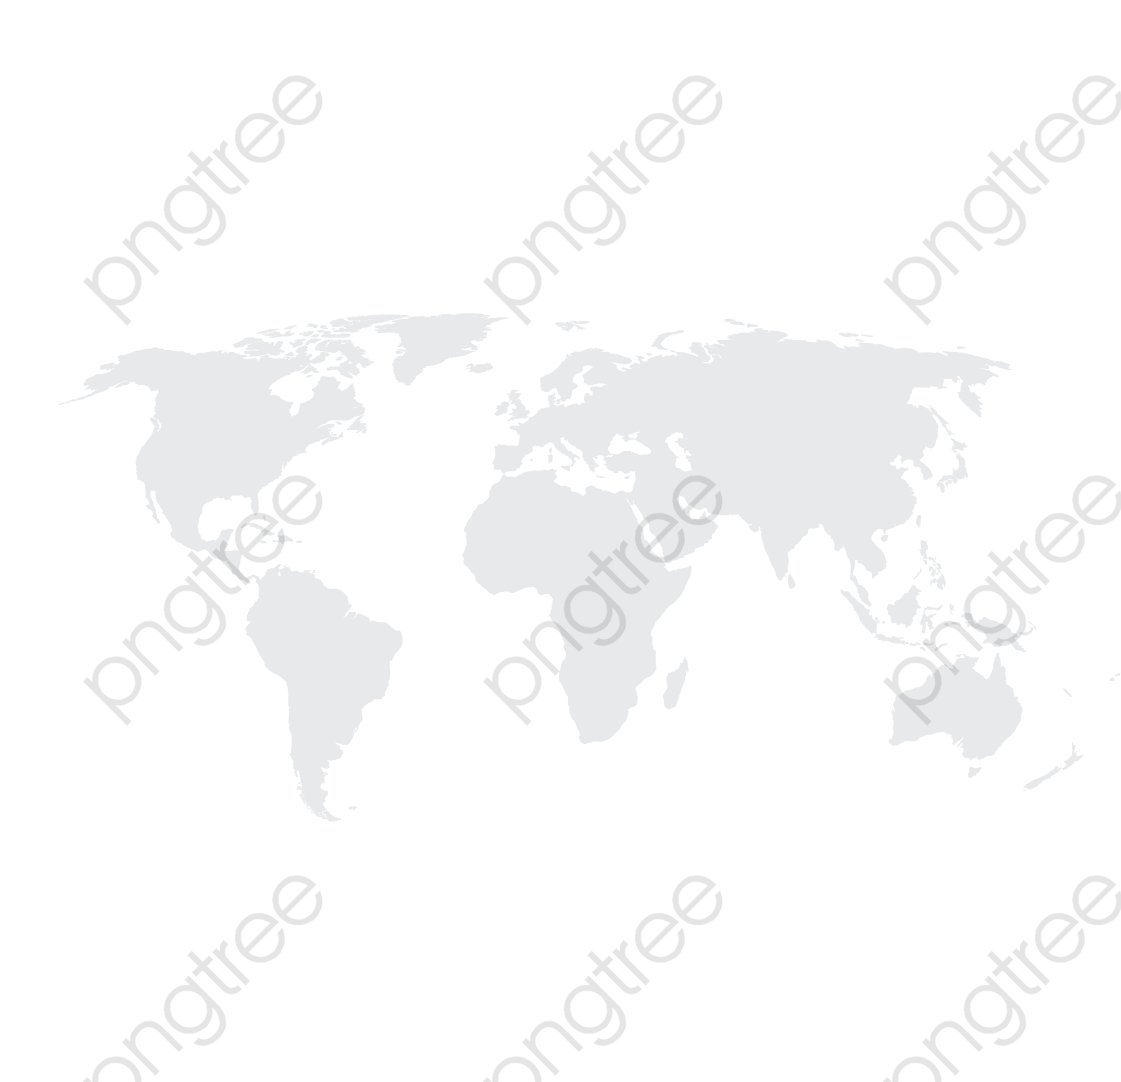 Gray World Map World Map Map Png And Vector With Transparent